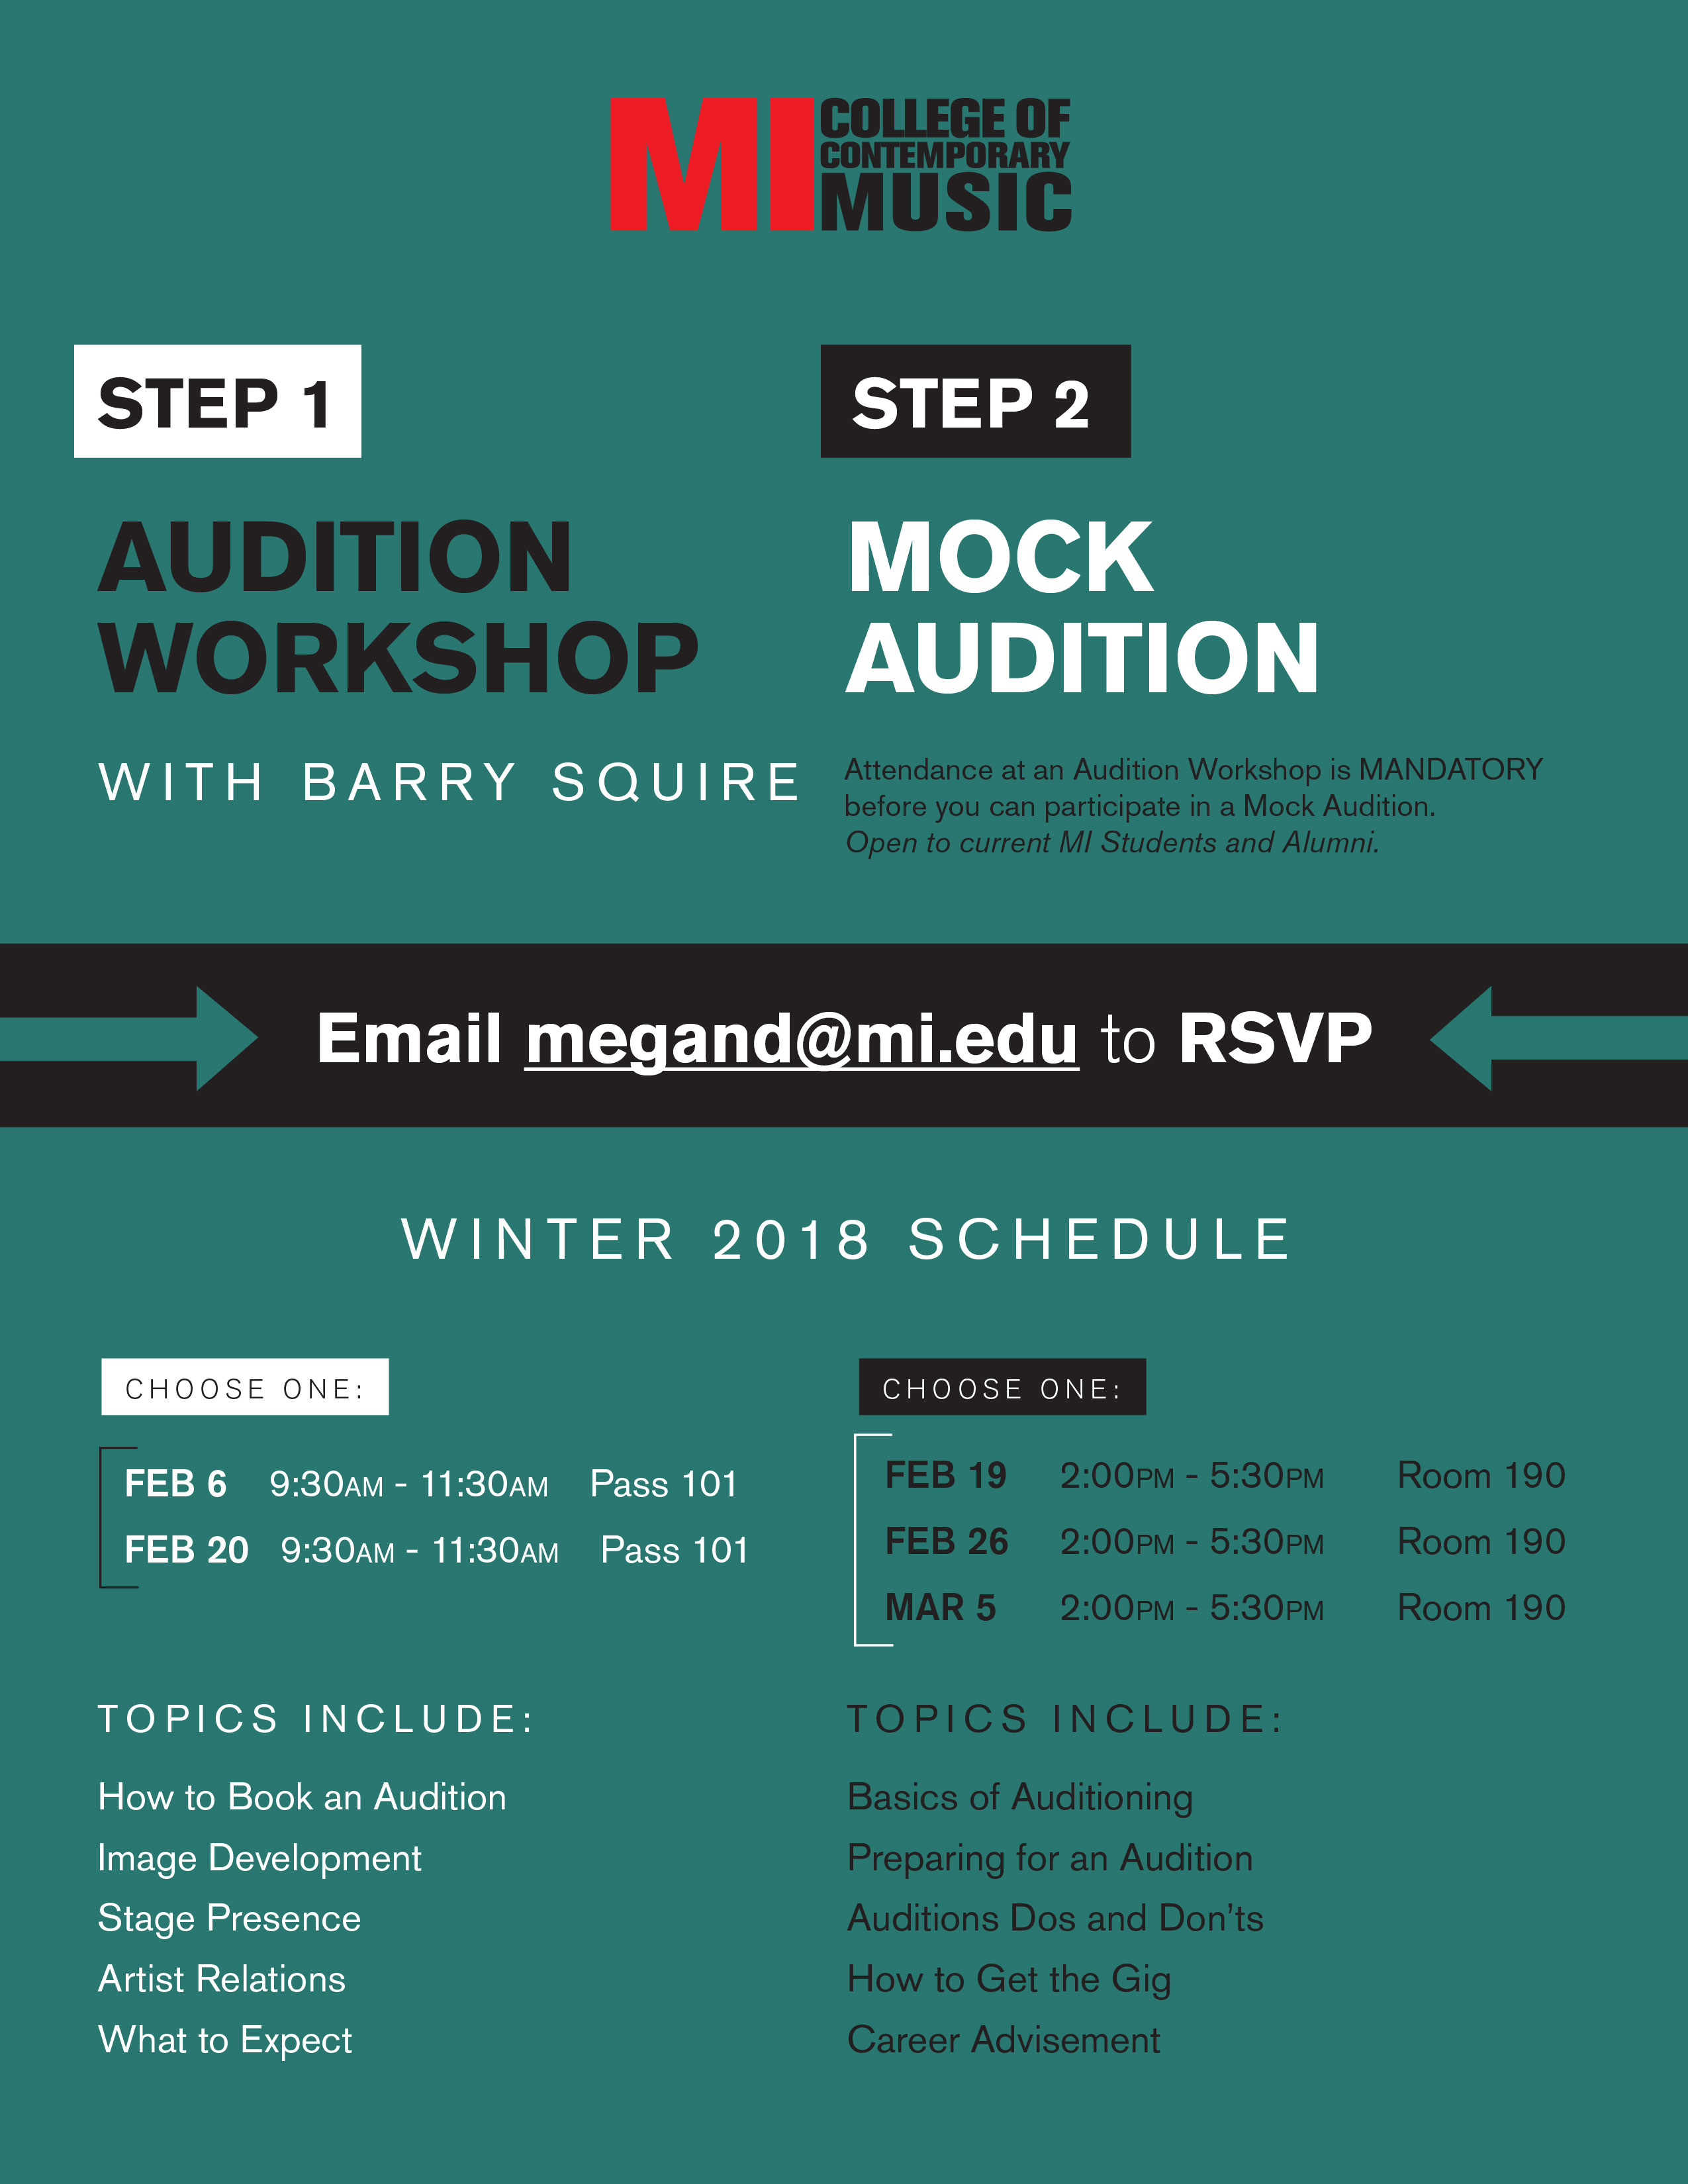 AUDITION WORKSHOP WITH BARRY SQUIRE TUESDAY, FEBRUARY 6, 2018 9:30-11:30AM